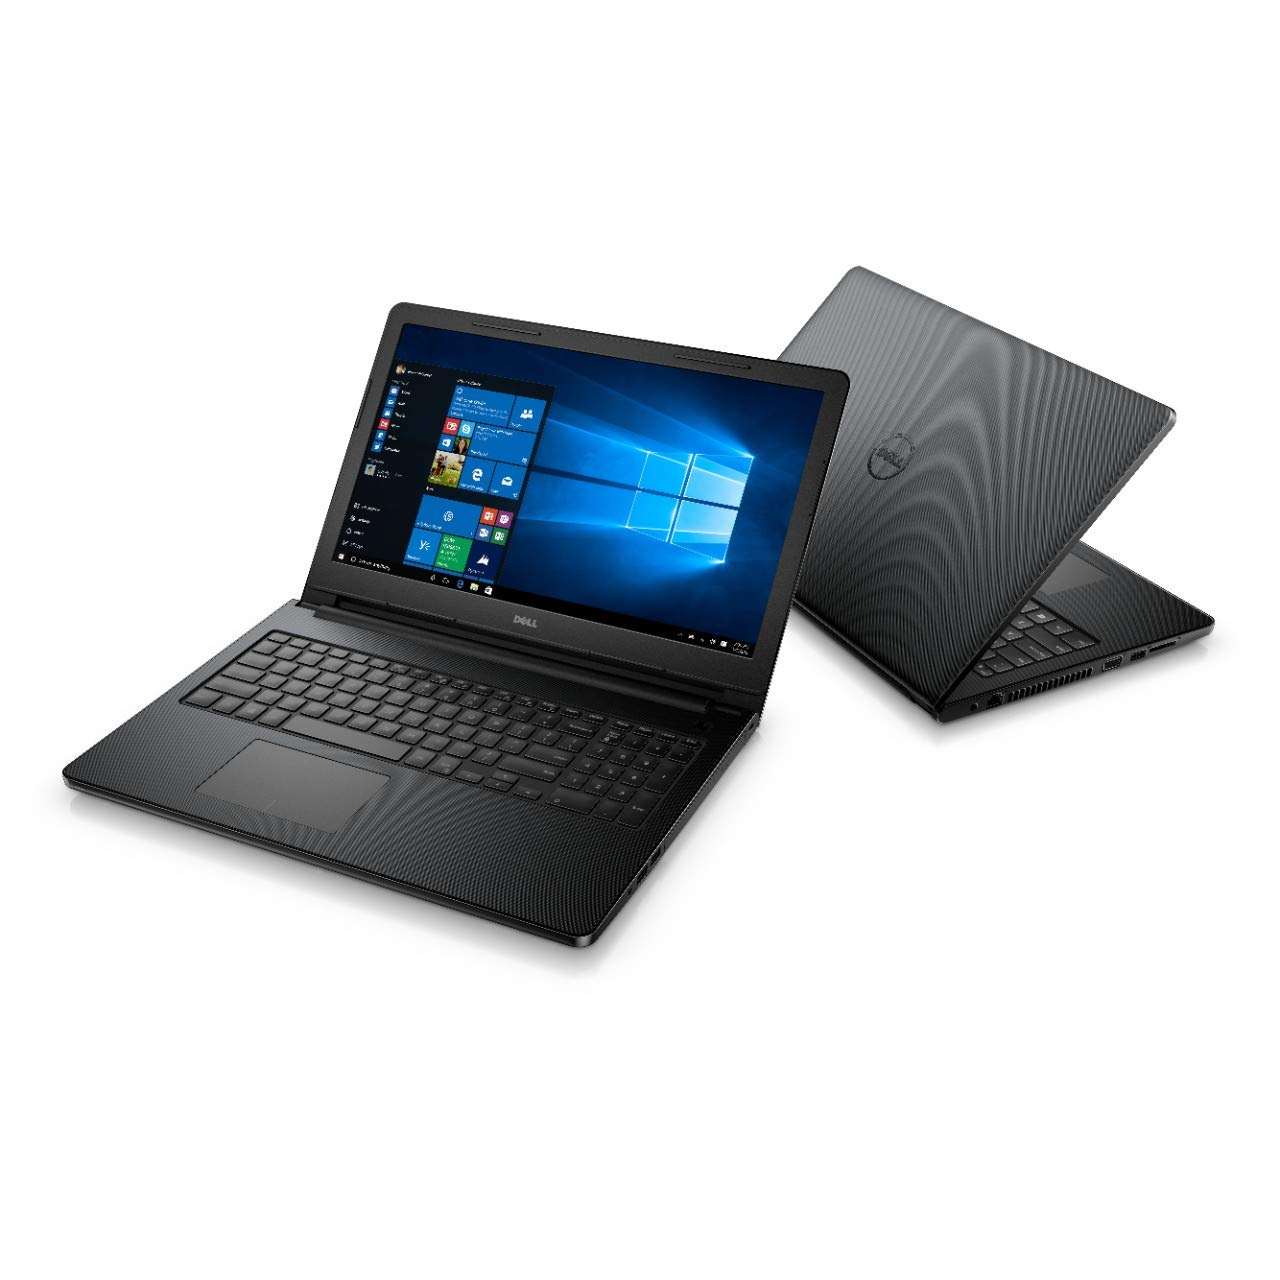 DELL 2405 SDHC DRIVERS FOR WINDOWS 8